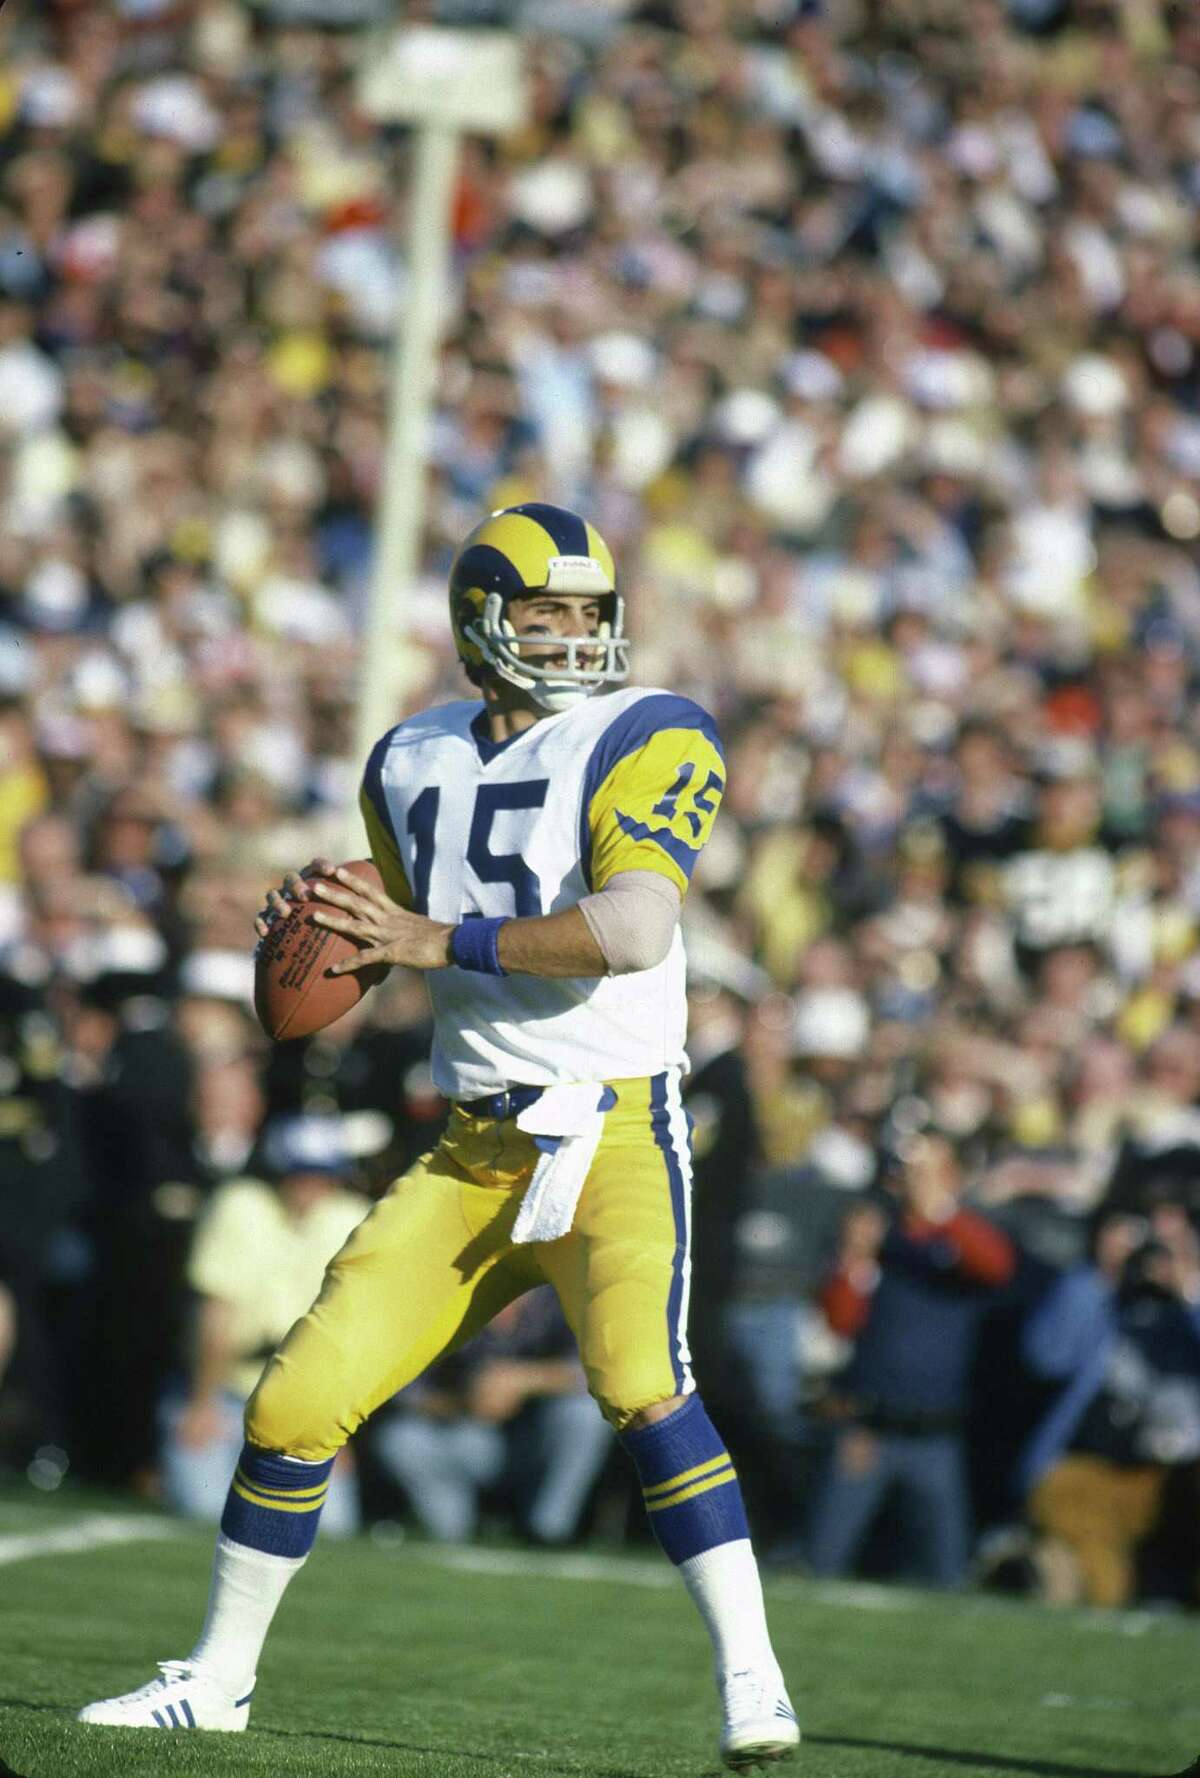 PASADENA, CA- JANUARY 20: Vince Ferragamo #15 of the Los Angeles Rams drops back to pass against the Pittsburgh Steelers during Super Bowl XIV on January 20, 1980 at the Rose Bowl in Pasadena, California. The Steelers won the Super Bowl 31-19. (Photo by Focus on Sport/Getty Images)